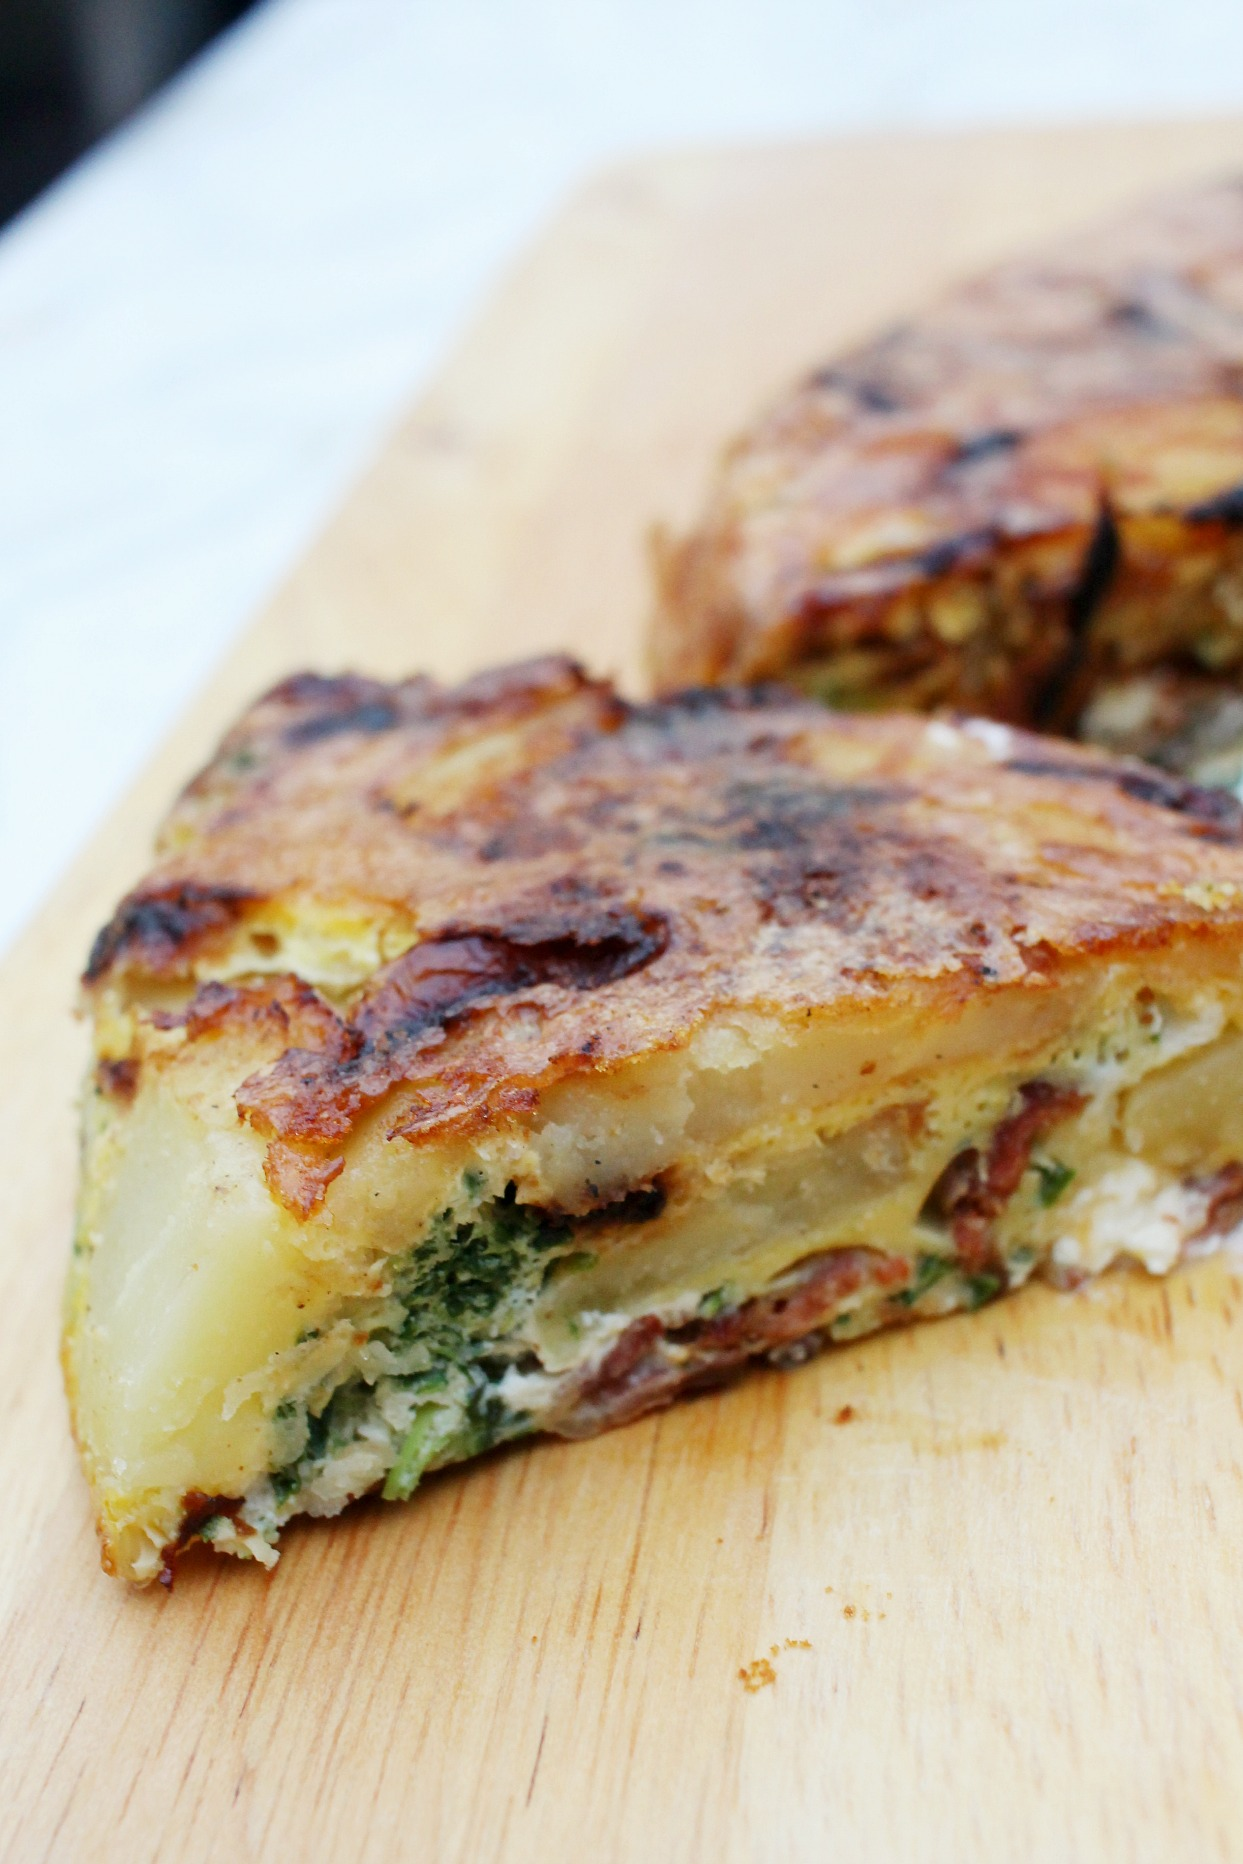 a slice of a potato and bacon frittata on a wooden cutting board